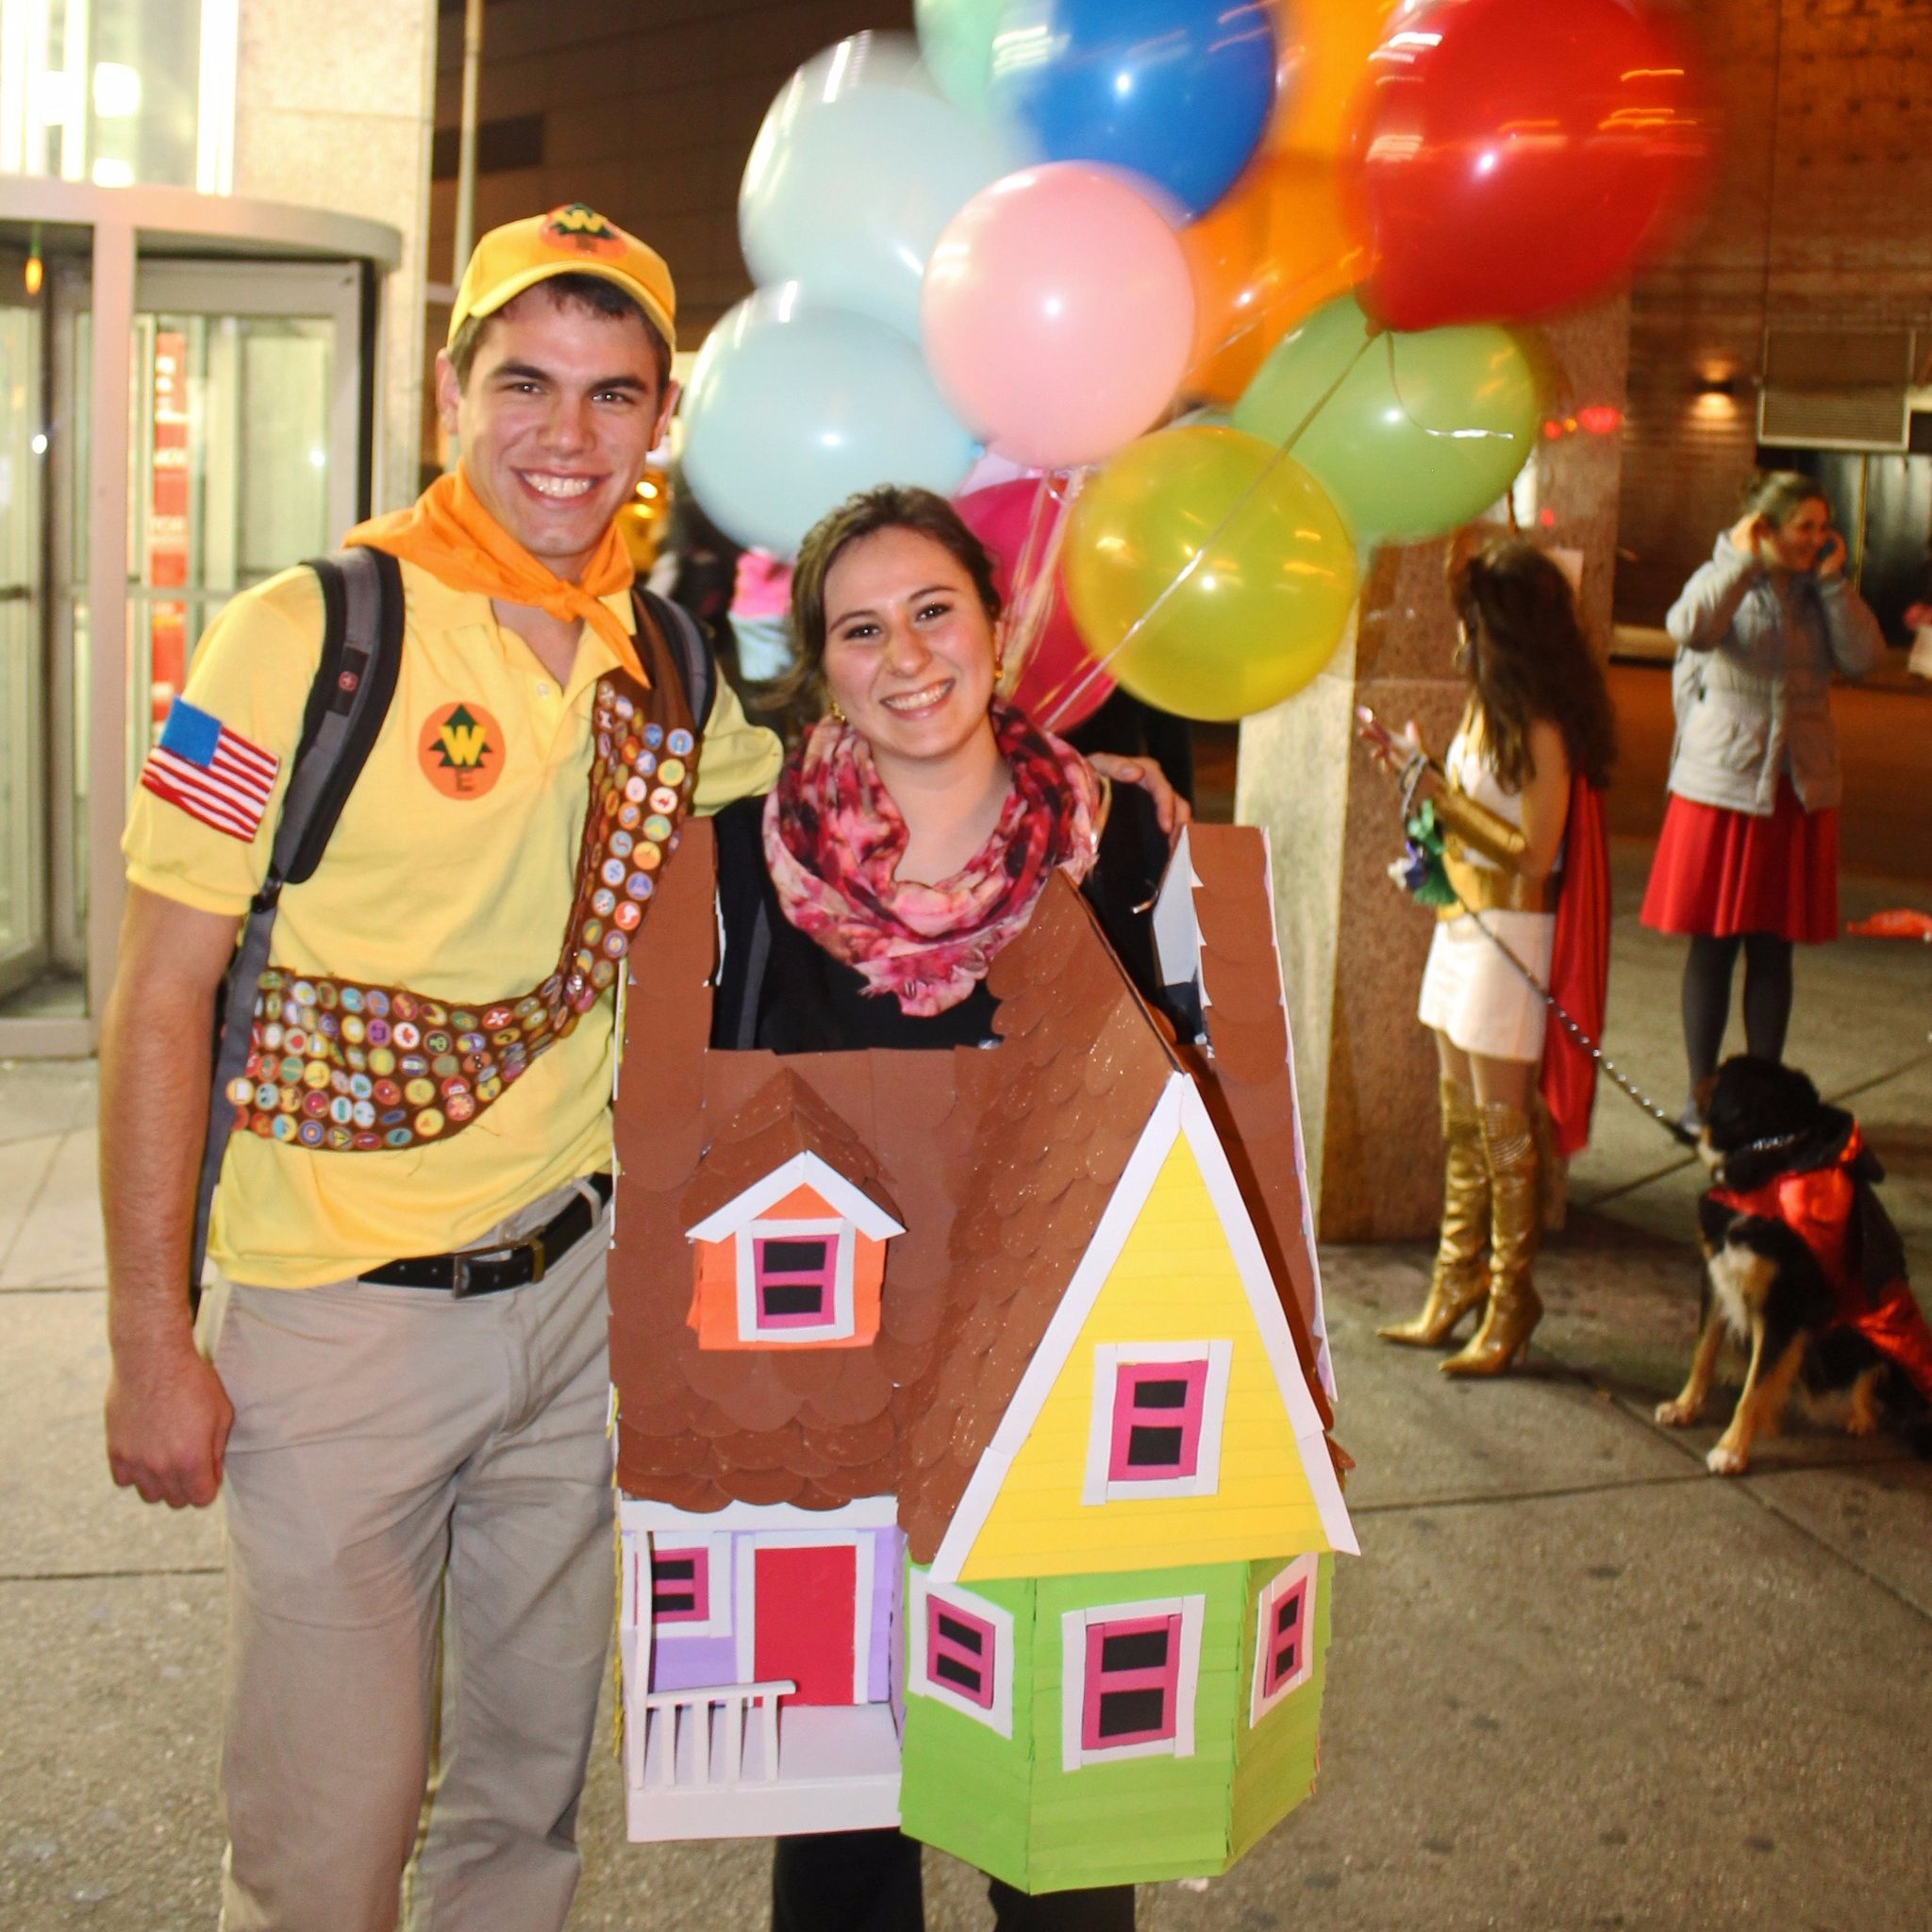 10 Great Awesome Couple Halloween Costume Ideas cheap diy couples halloween costumes popsugar smart living 19 2021